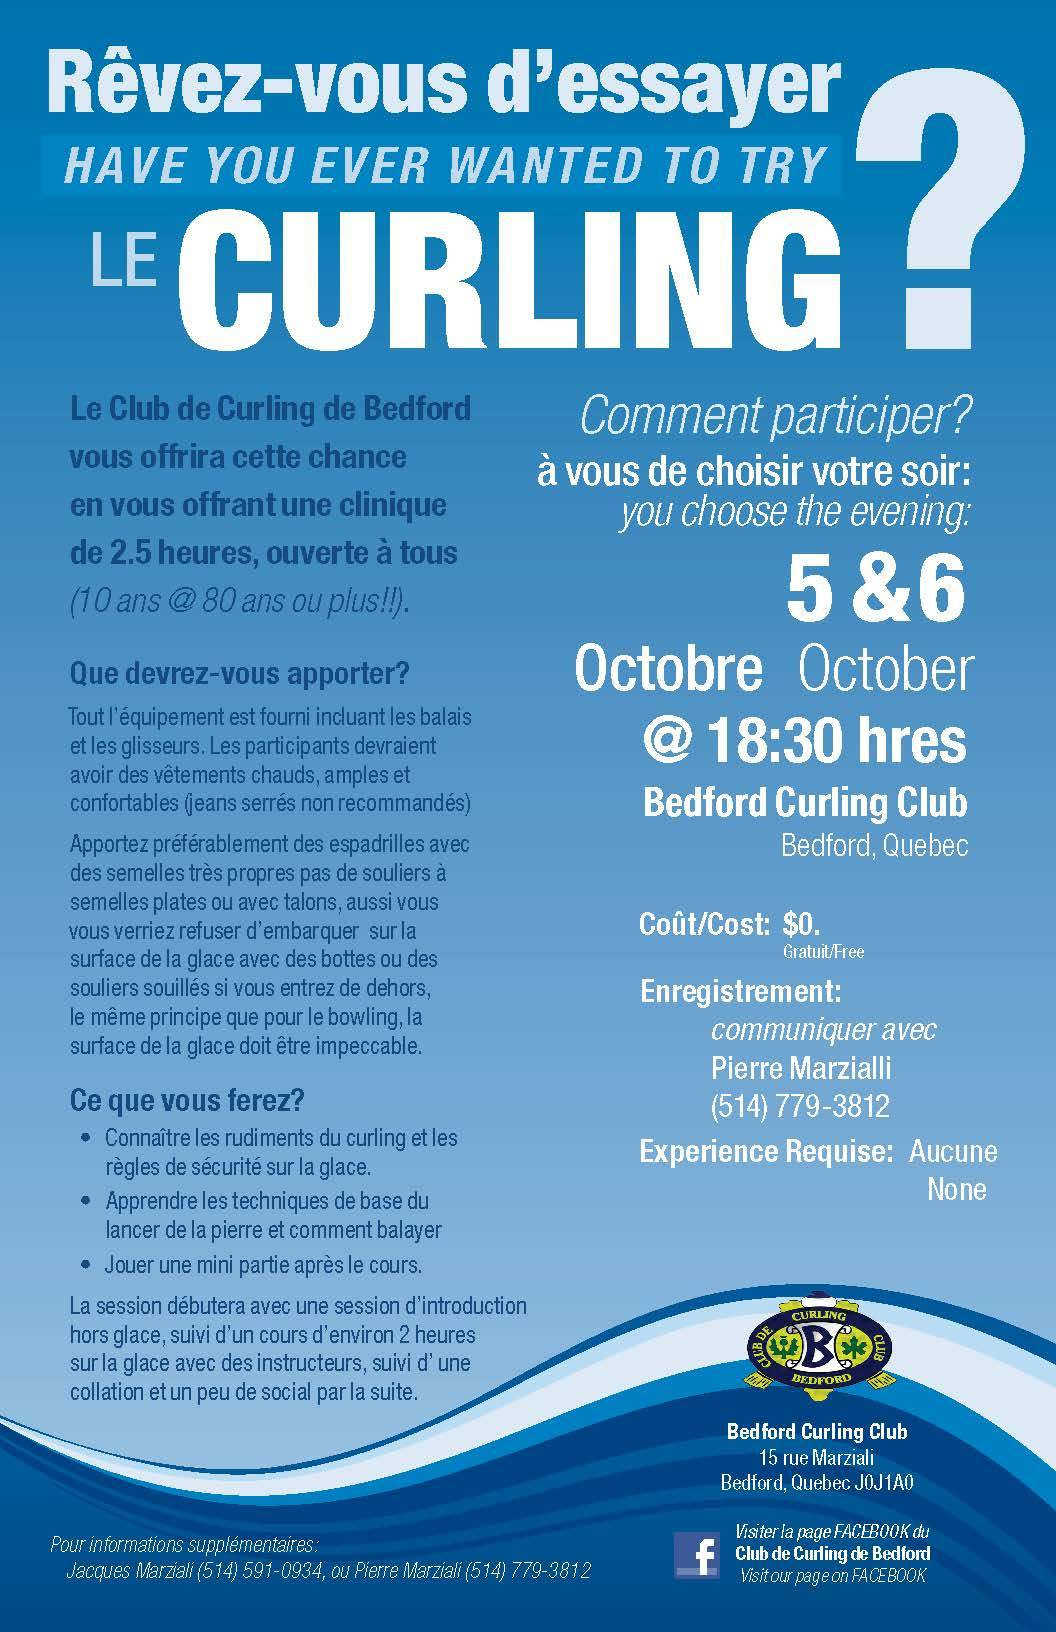 Bedford Curling Club